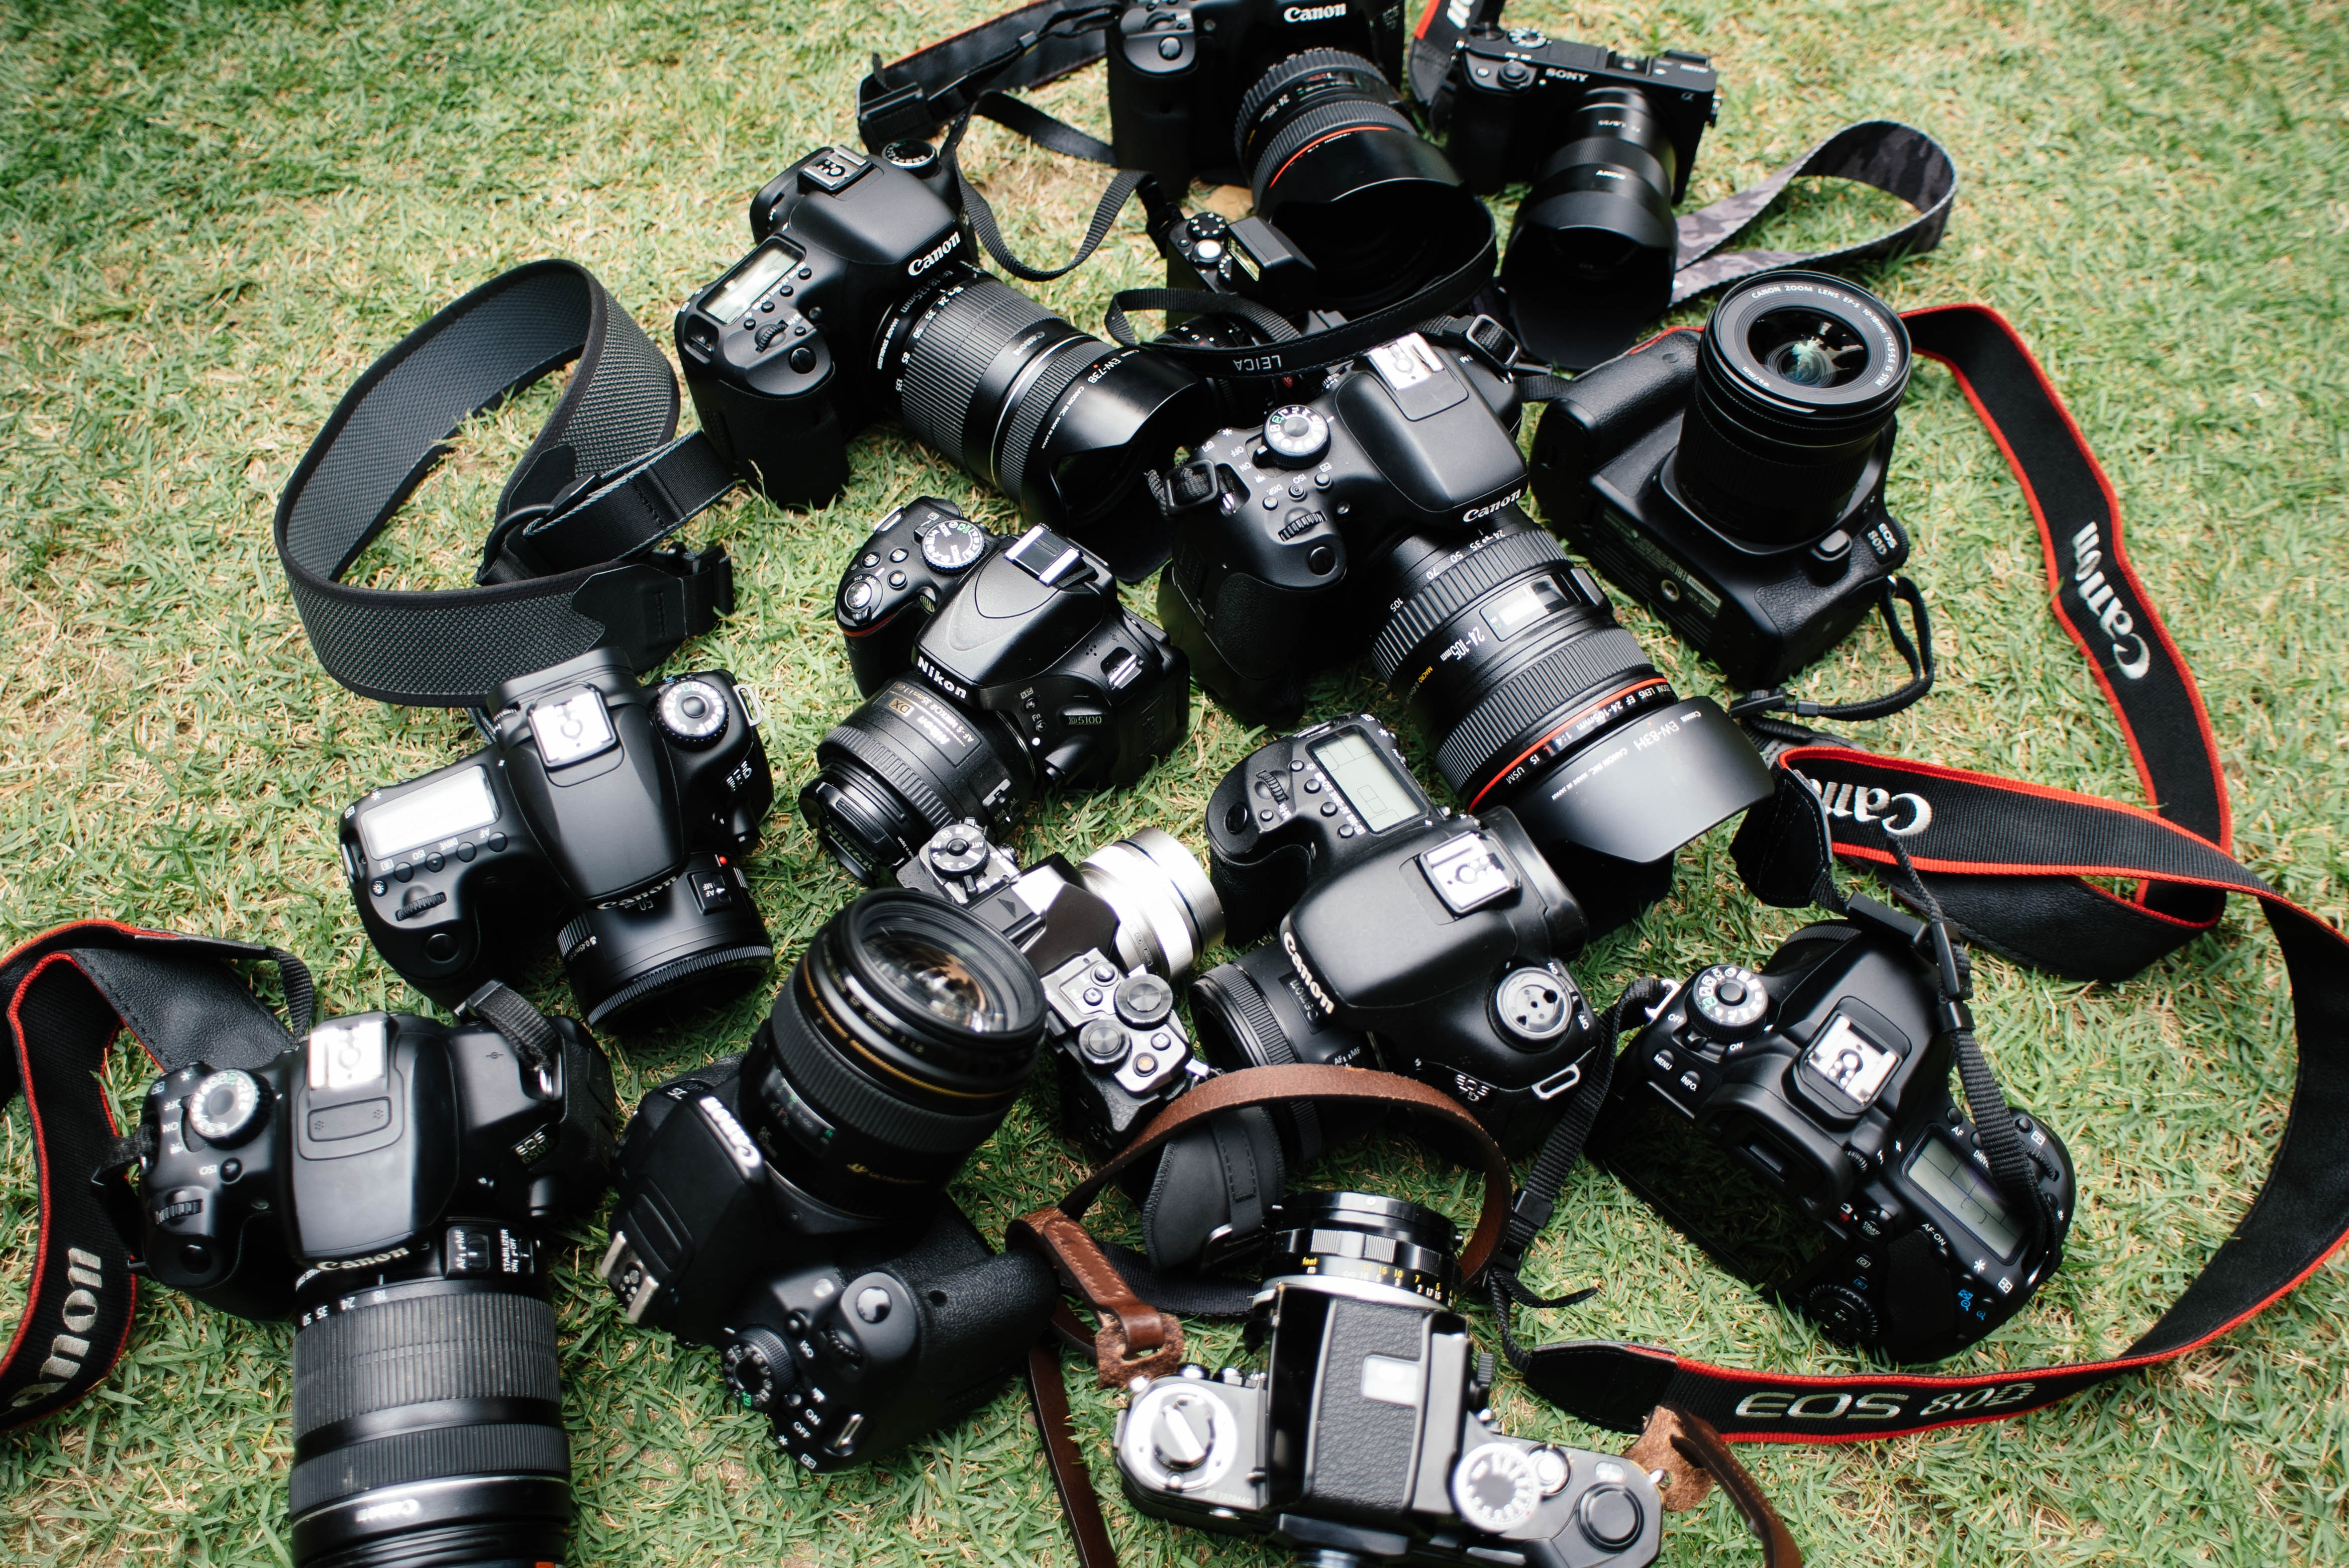 Various Canon DSLR cameras with straps scattered on a grassy floor